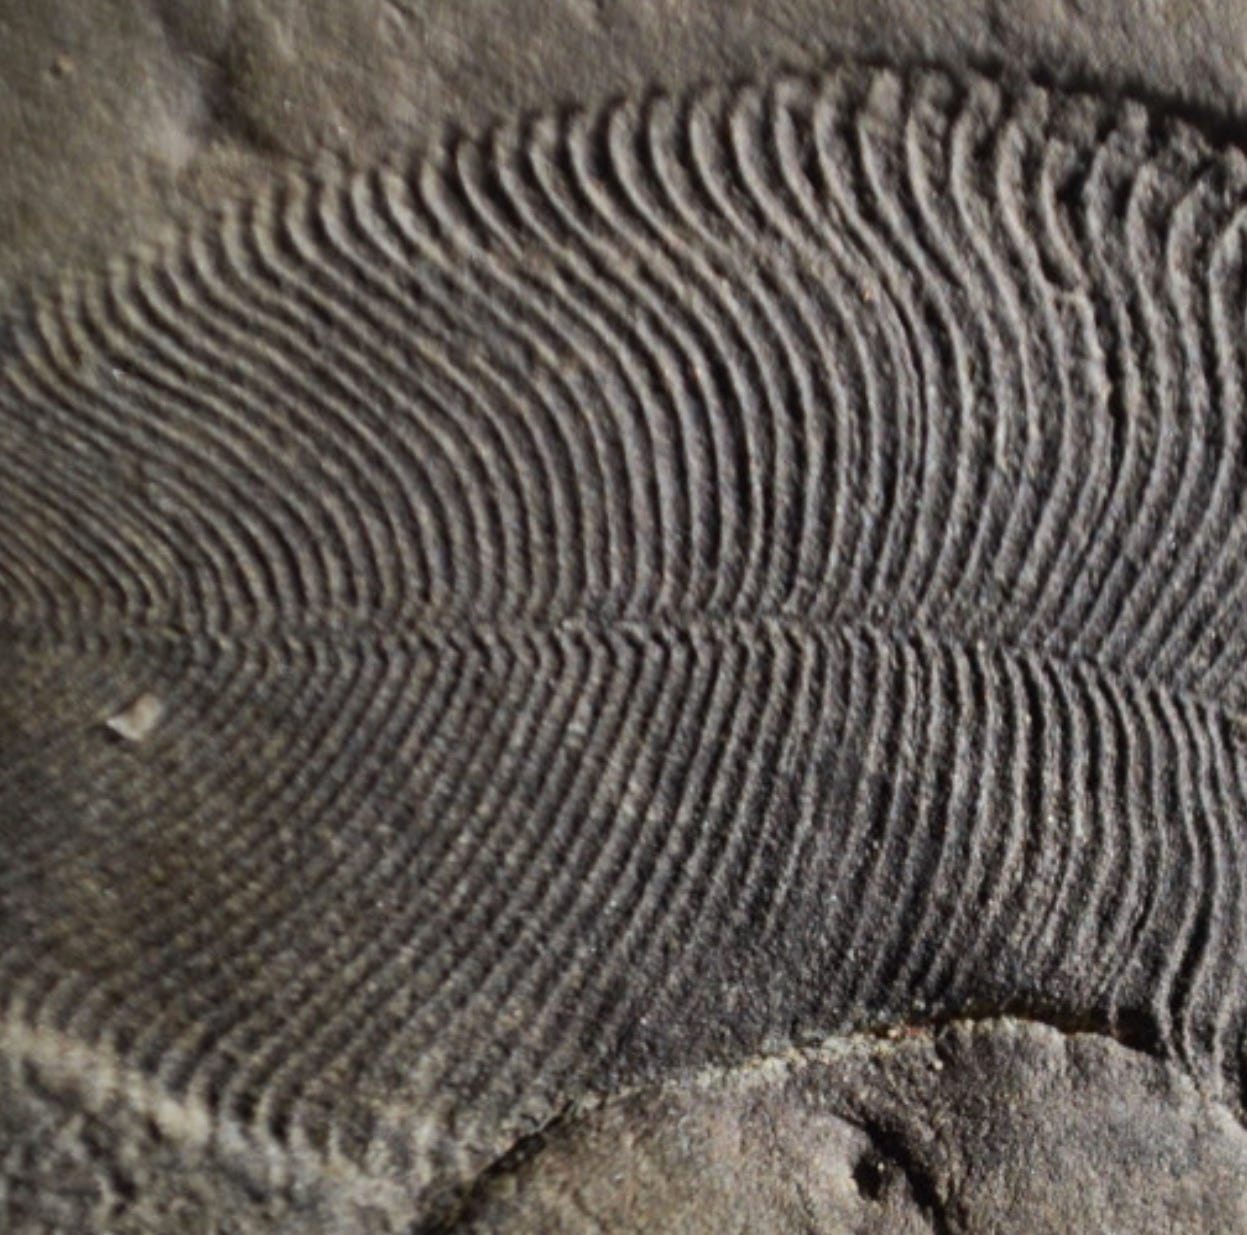 Strange ancient animal fossil is the oldest on record, scientists say